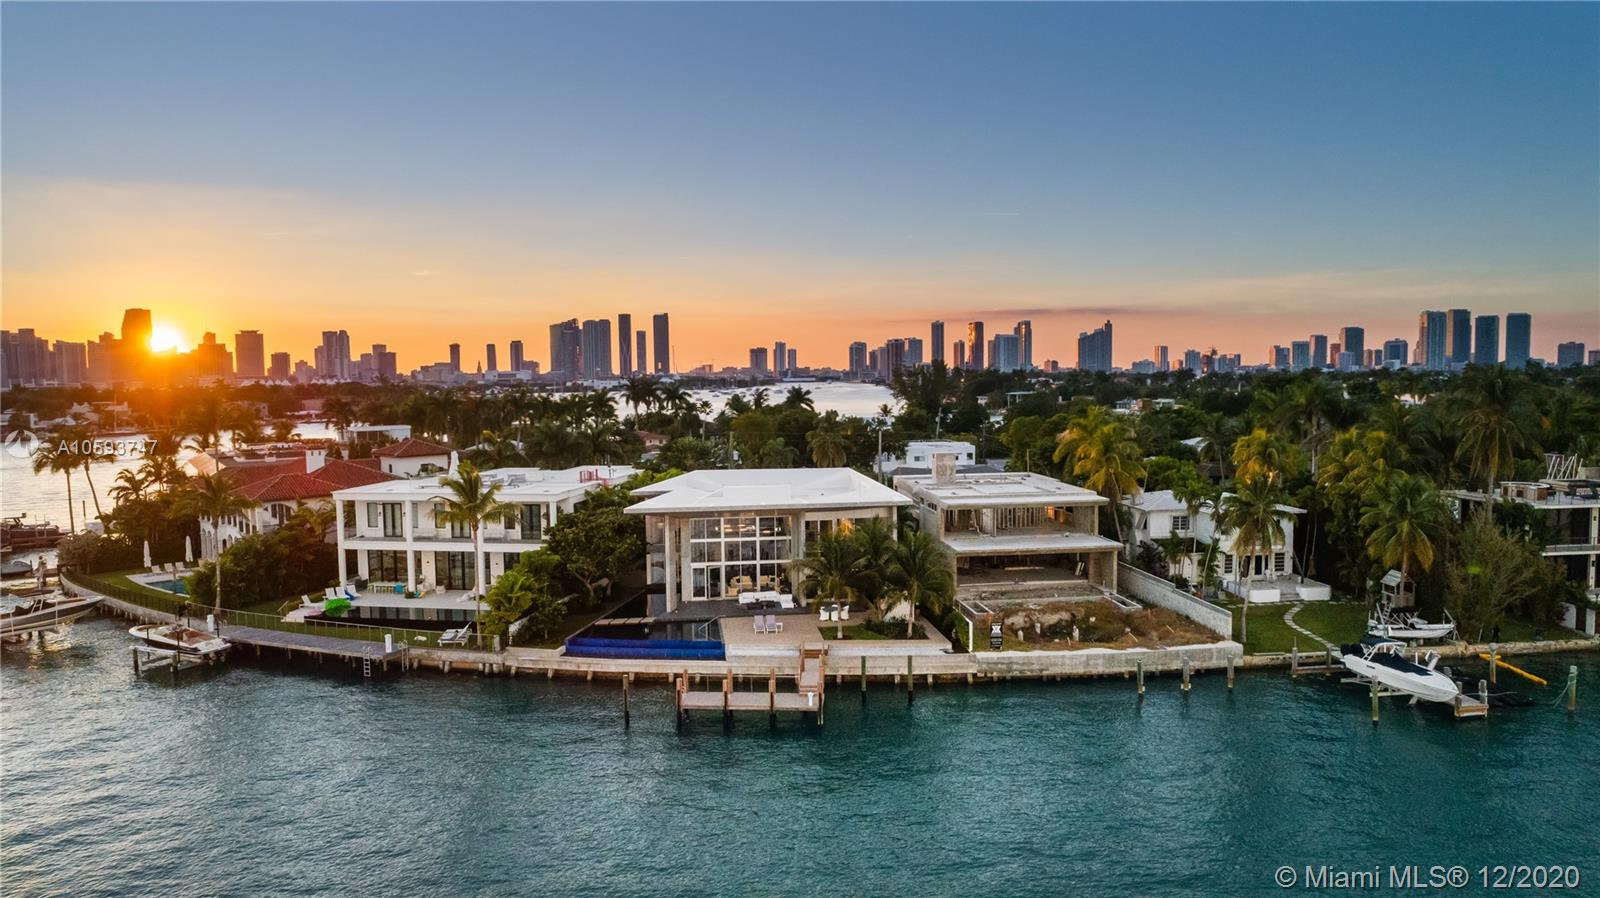 Architectural Modern Masterpiece And One-Of-A-Kind Work Of Art On Coveted Venetian Islands! The Art Connoisseur, Interior Design Lover, And Future Owner Will Revel In This Fully Custom Awe Inspiring Home.Boasting Expansive Biscayne Bay Waterfront Views, Soaring Ceilings Mixed W/Cantilevered Concrete & Voluminous Glass, Floating Sculpture Staircase W/Illuminated Black Quartz, Unique 19Ft Noa Rated Entry Door Never Again Replicated And Interior Tropical Garden W/Sustained Irrigation System. Chef Inspired Enormous Tailor Made Snaidero Kitchen & Bar W/Temp Controlled Glass Wine Room Is An Entertainers Dream! In Addition, Each Of The 5 Bedrooms Have En Suite Baths & Fully Built Out Custom Closets, 2 Separate Family Rooms W/Incredible Views, Commercial Grade Elevator, And 3 Car Collectors Garage